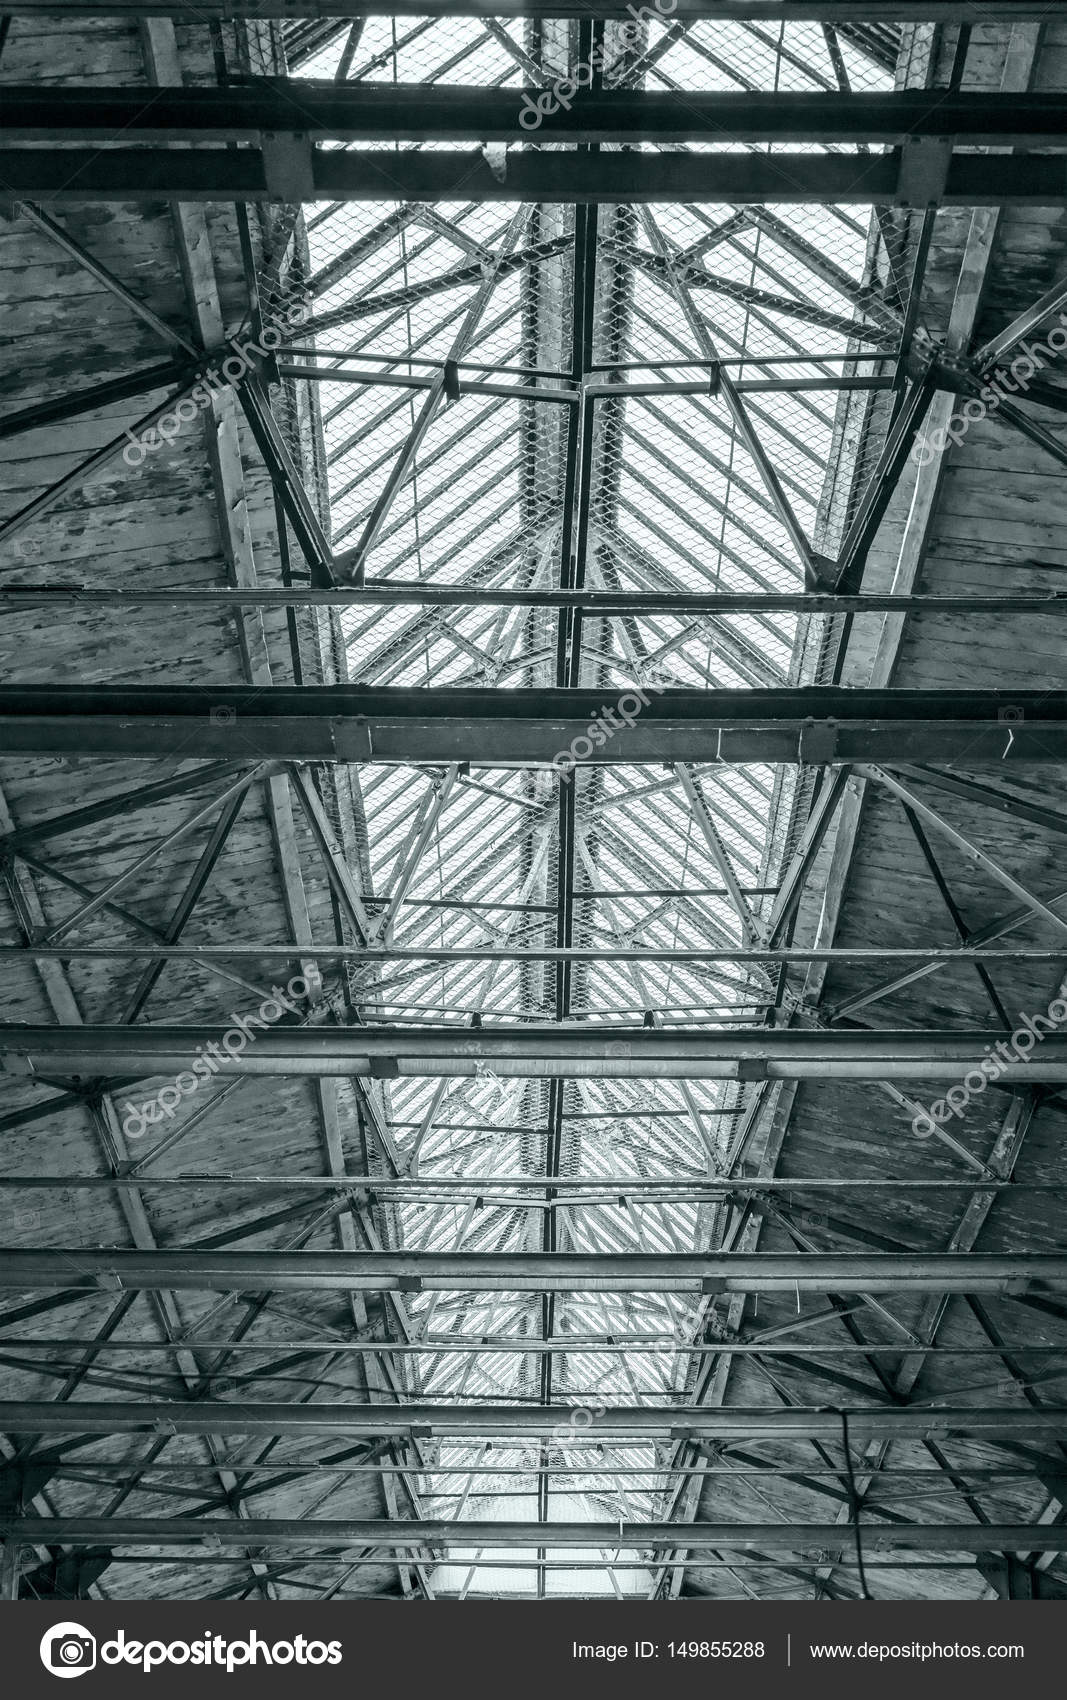 Roof Of Industrial Building Ceiling Of Factory With Steel Beams